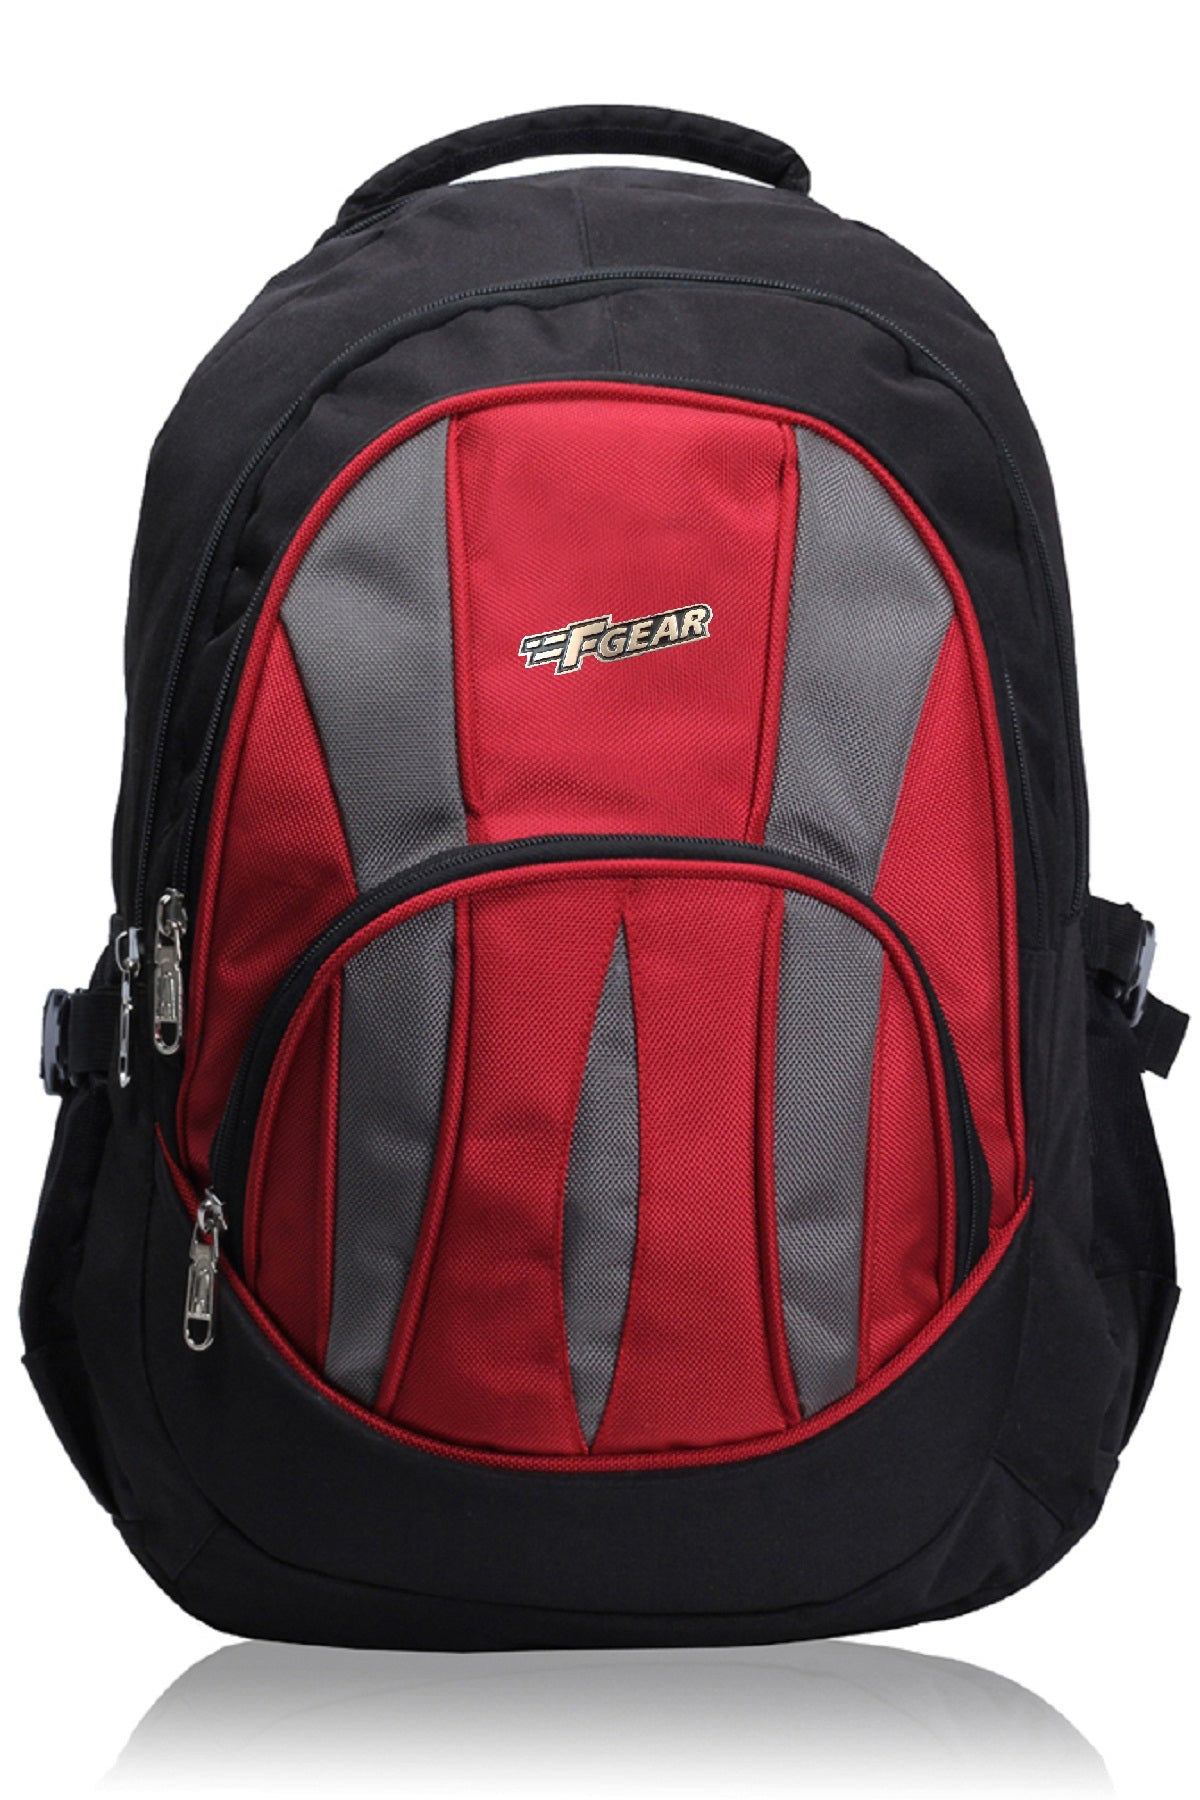 F Gear Adios 32 Ltrs Red Casual Laptop Backpack (1856)